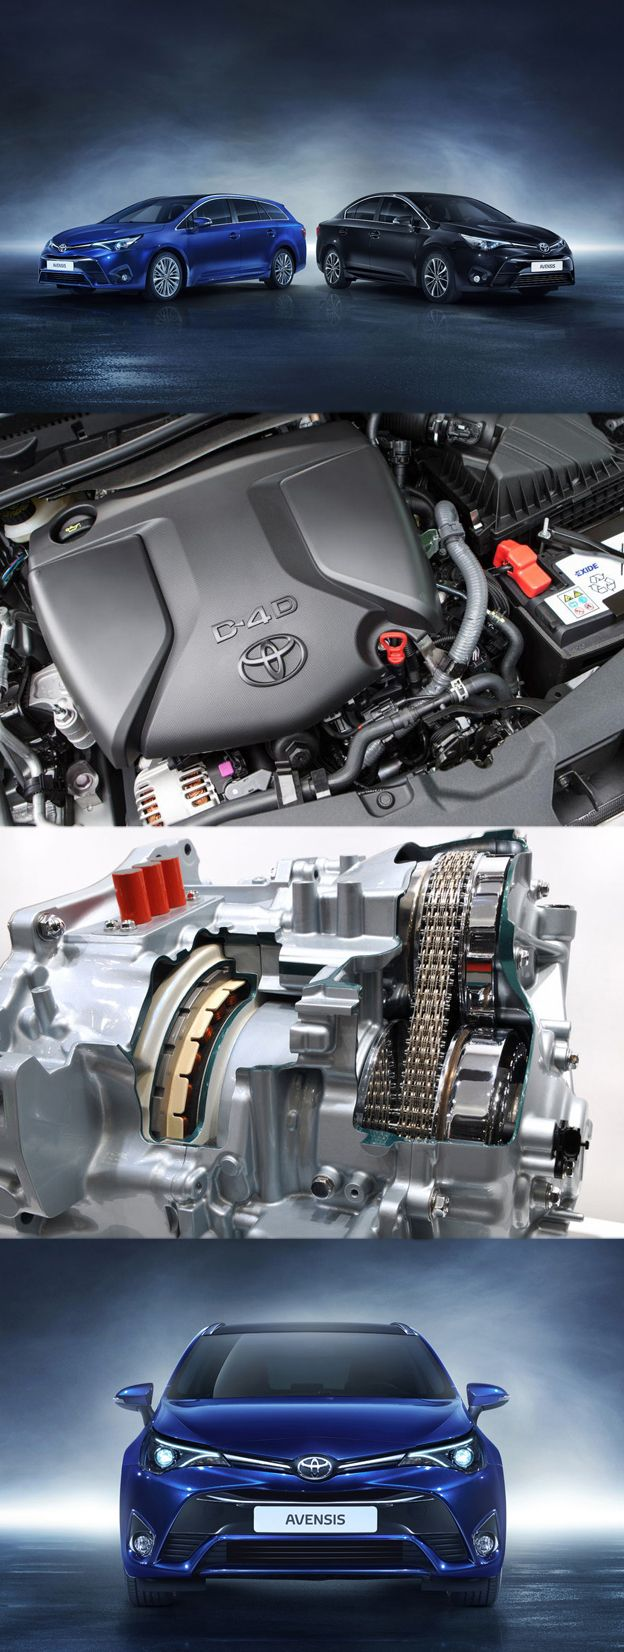 The Toyota Avensis Is Still In The Market With Its Aged But Reliable Built http://www.toyotaengineandgearboxes.com/toyota-avensis-still-market-aged-reliable-built/ #ToyotaAvensis #CVTGearbox #Engine #Toyota